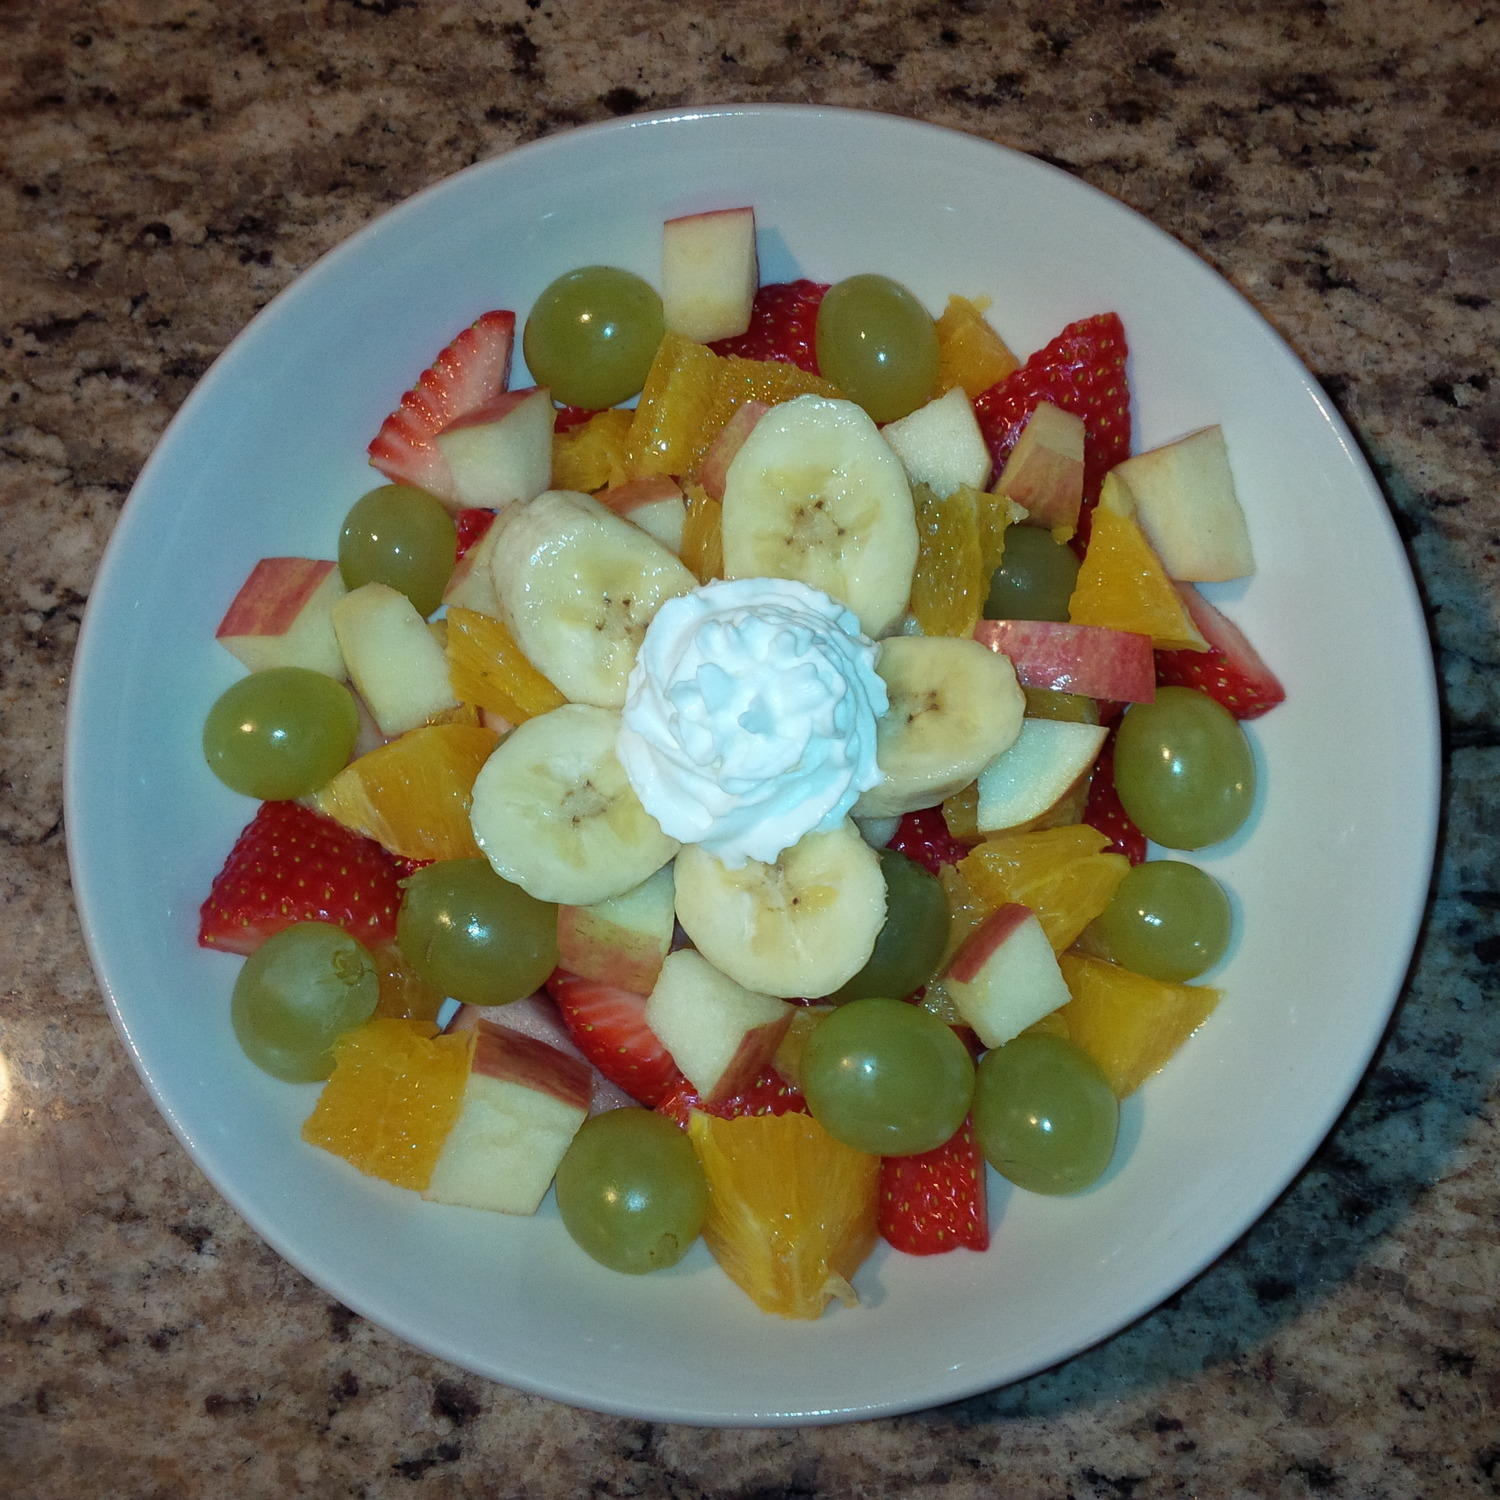 Fruit Salad #1